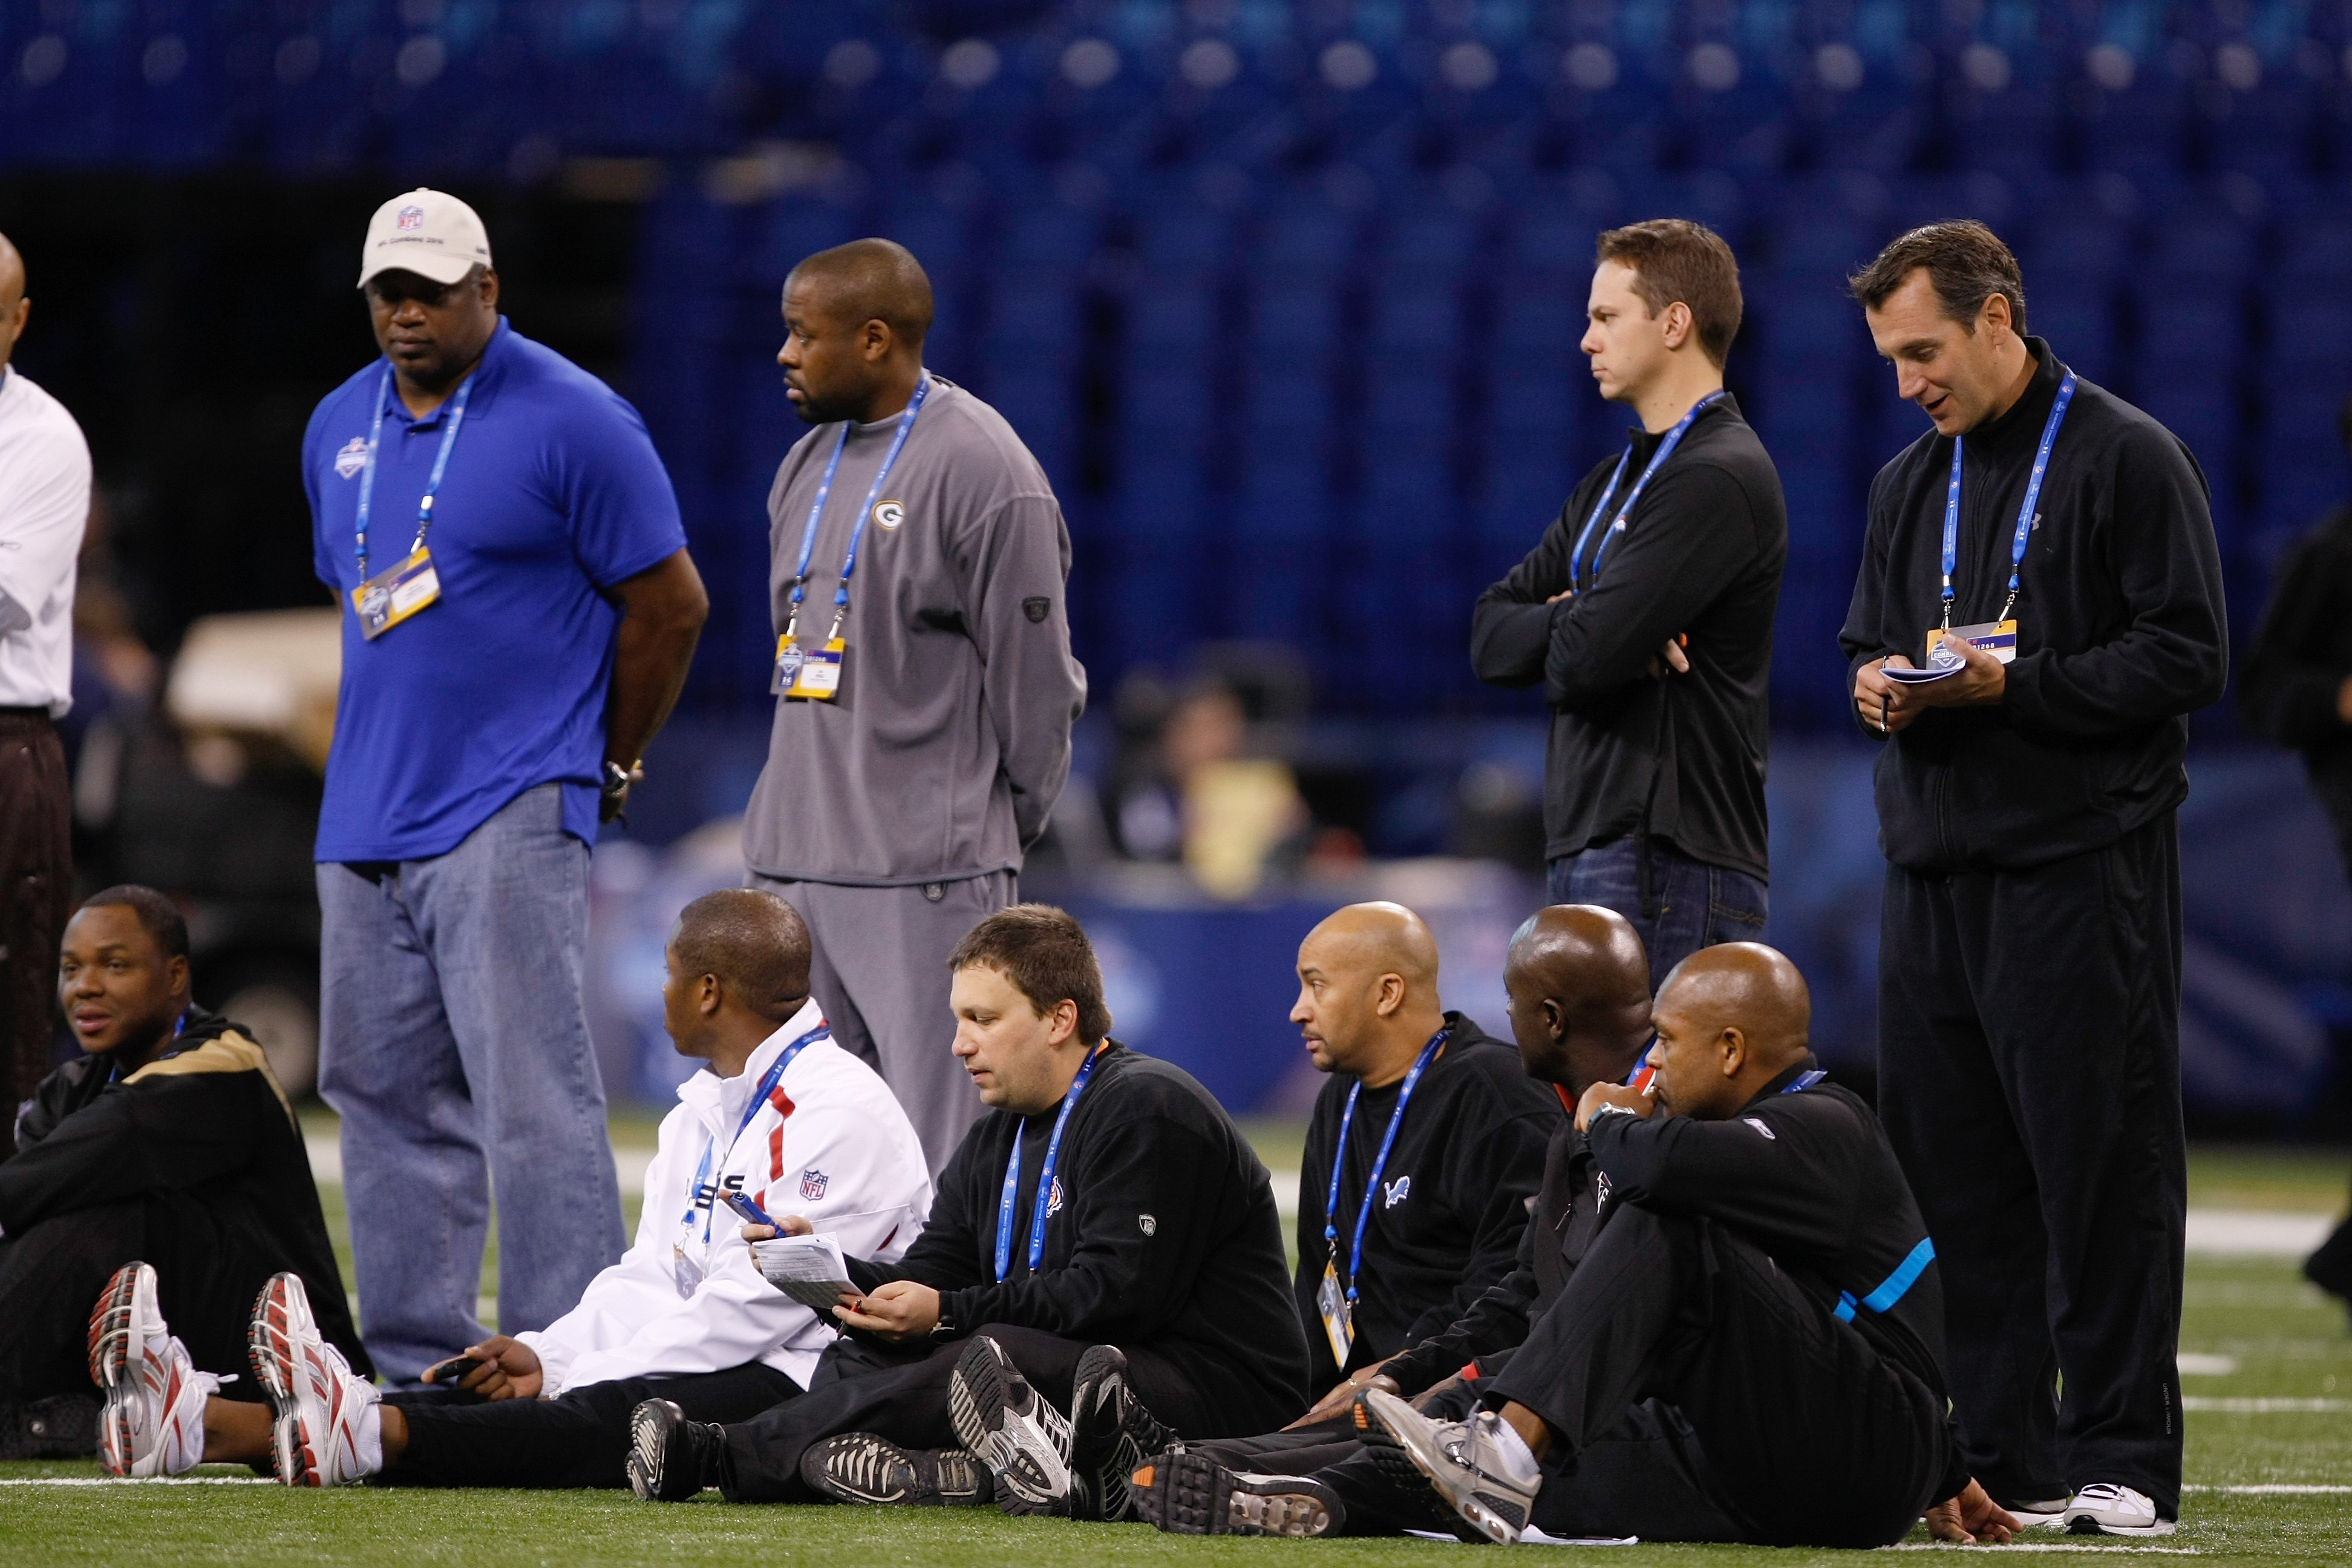 INDIANAPOLIS, IN - MARCH 2: Coaches evaluate players during the NFL Scouting Combine presented by Under Armour at Lucas Oil Stadium on March 2, 2010 in Indianapolis, Indiana. (Photo by Scott Boehm/Getty Images)